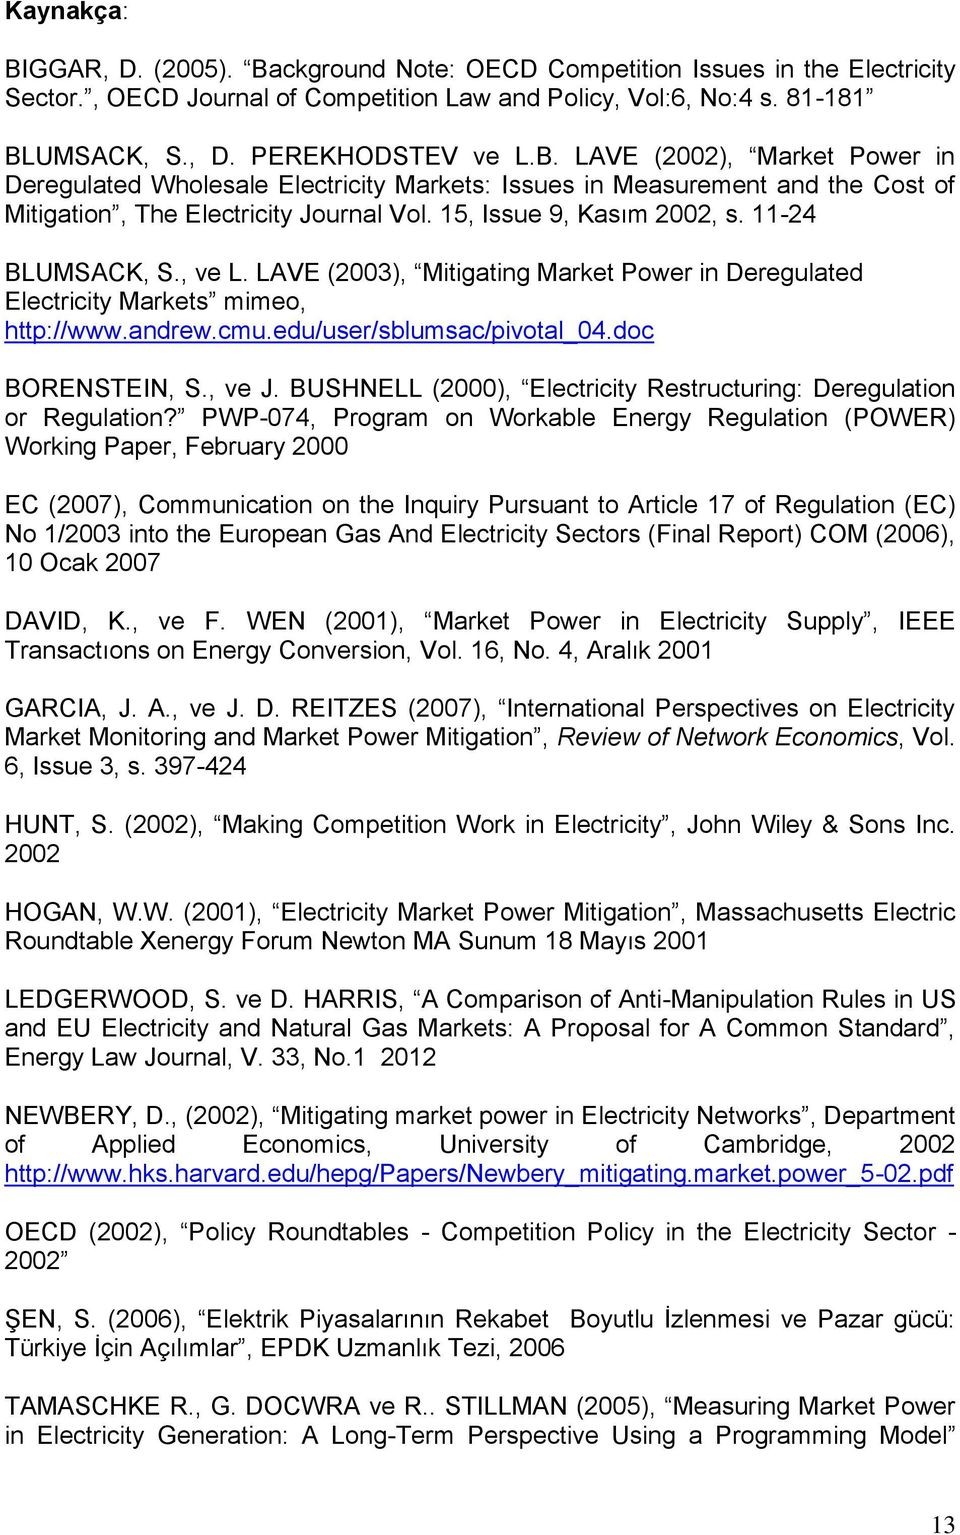 , ve L. LAVE (2003), Mitigating Market Power in Deregulated Electricity Markets mimeo, http://www.andrew.cmu.edu/user/sblumsac/pivotal_04.doc BORENSTEIN, S., ve J.